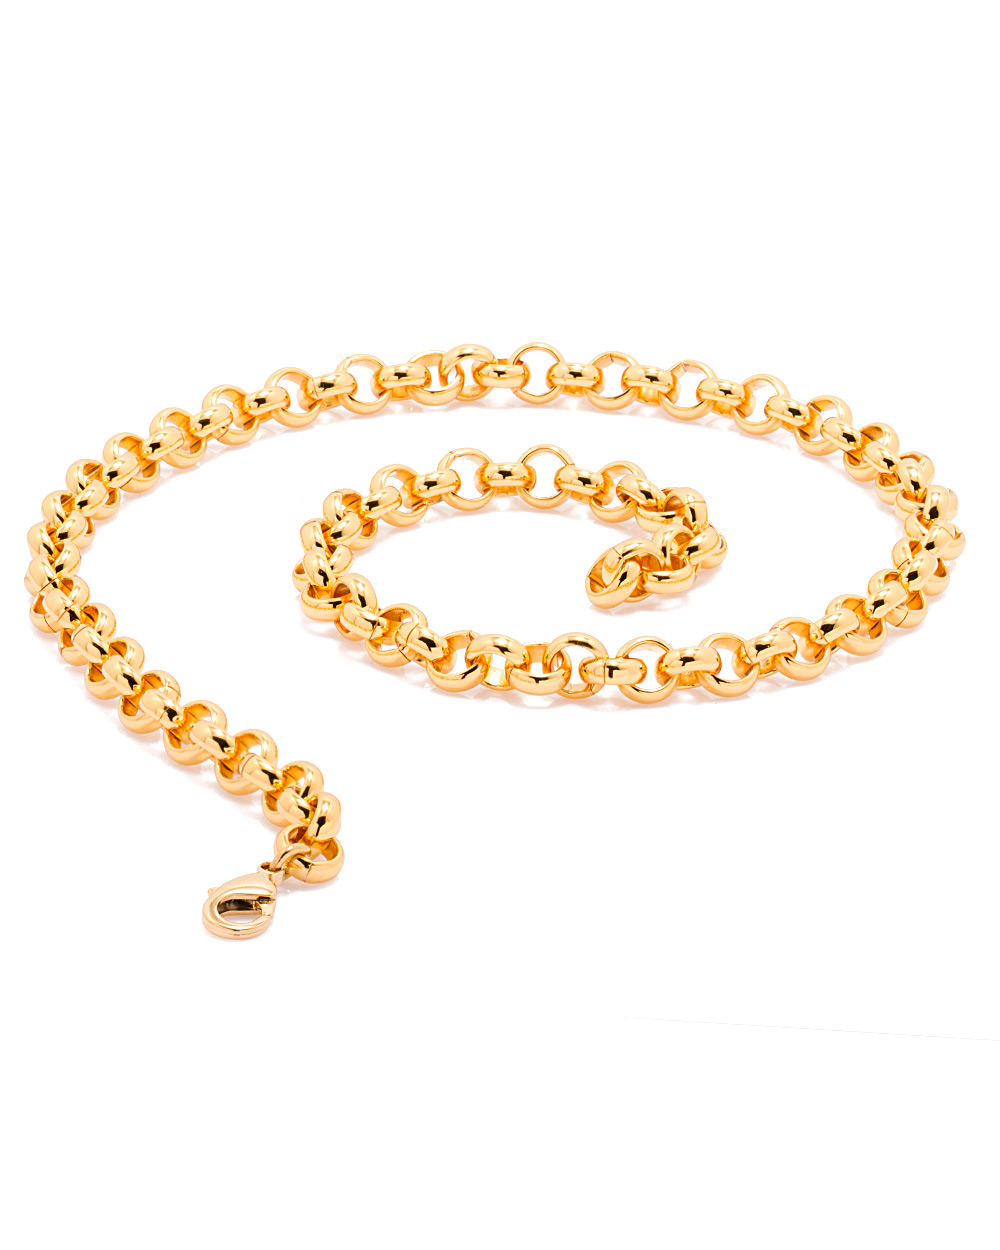 Buy Stylish Chain For Men In Round Link-Lock Design Online India ...